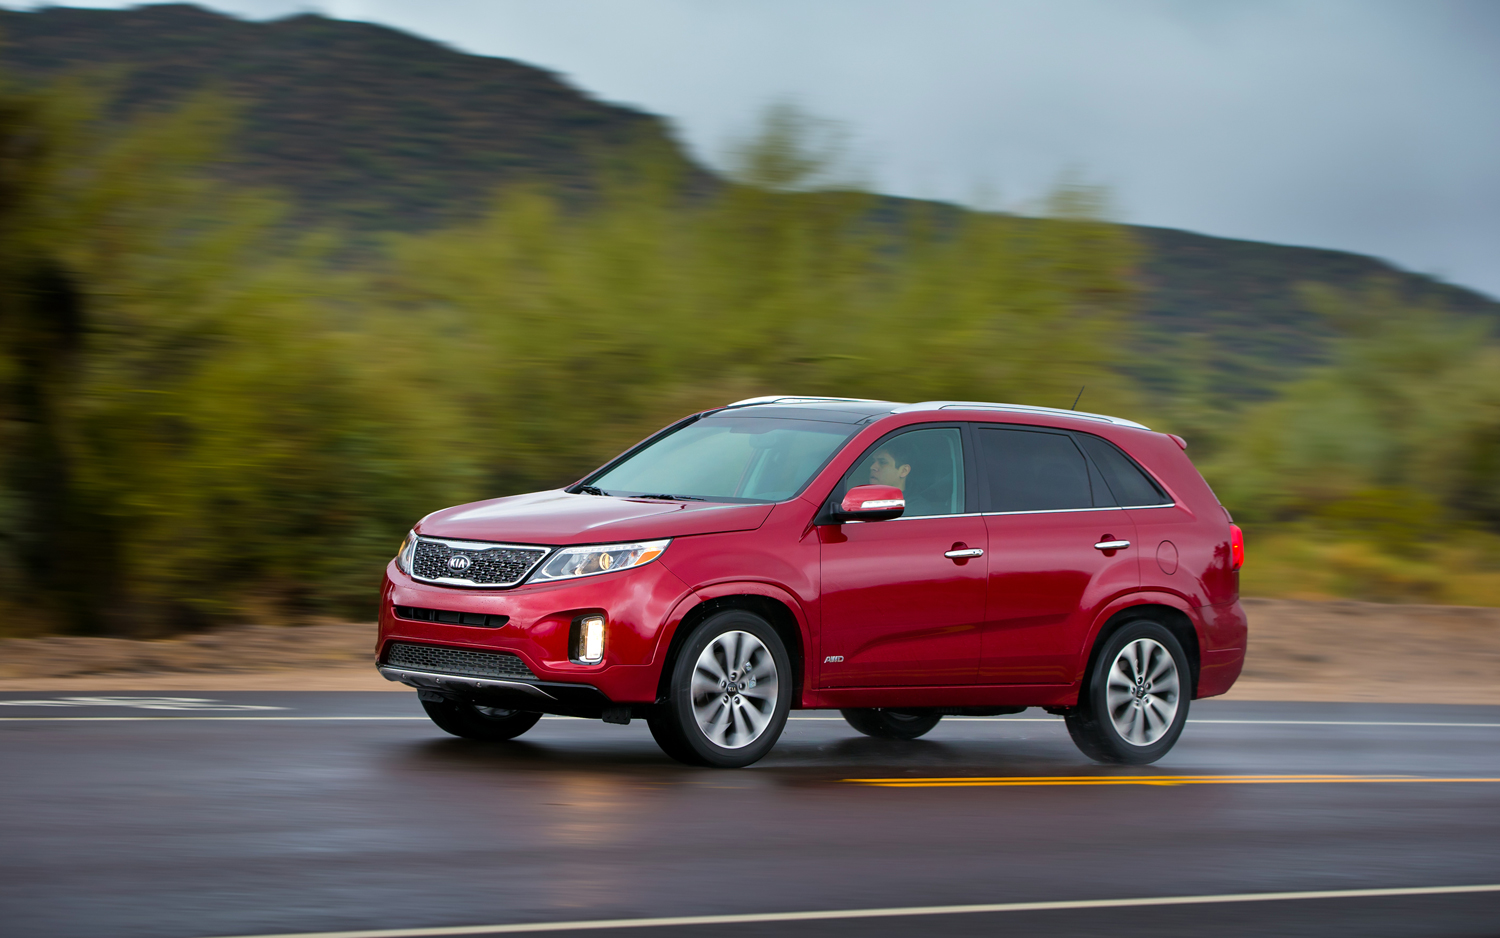 Superb 2014 Kia Sorento SX V6 GDI First Test